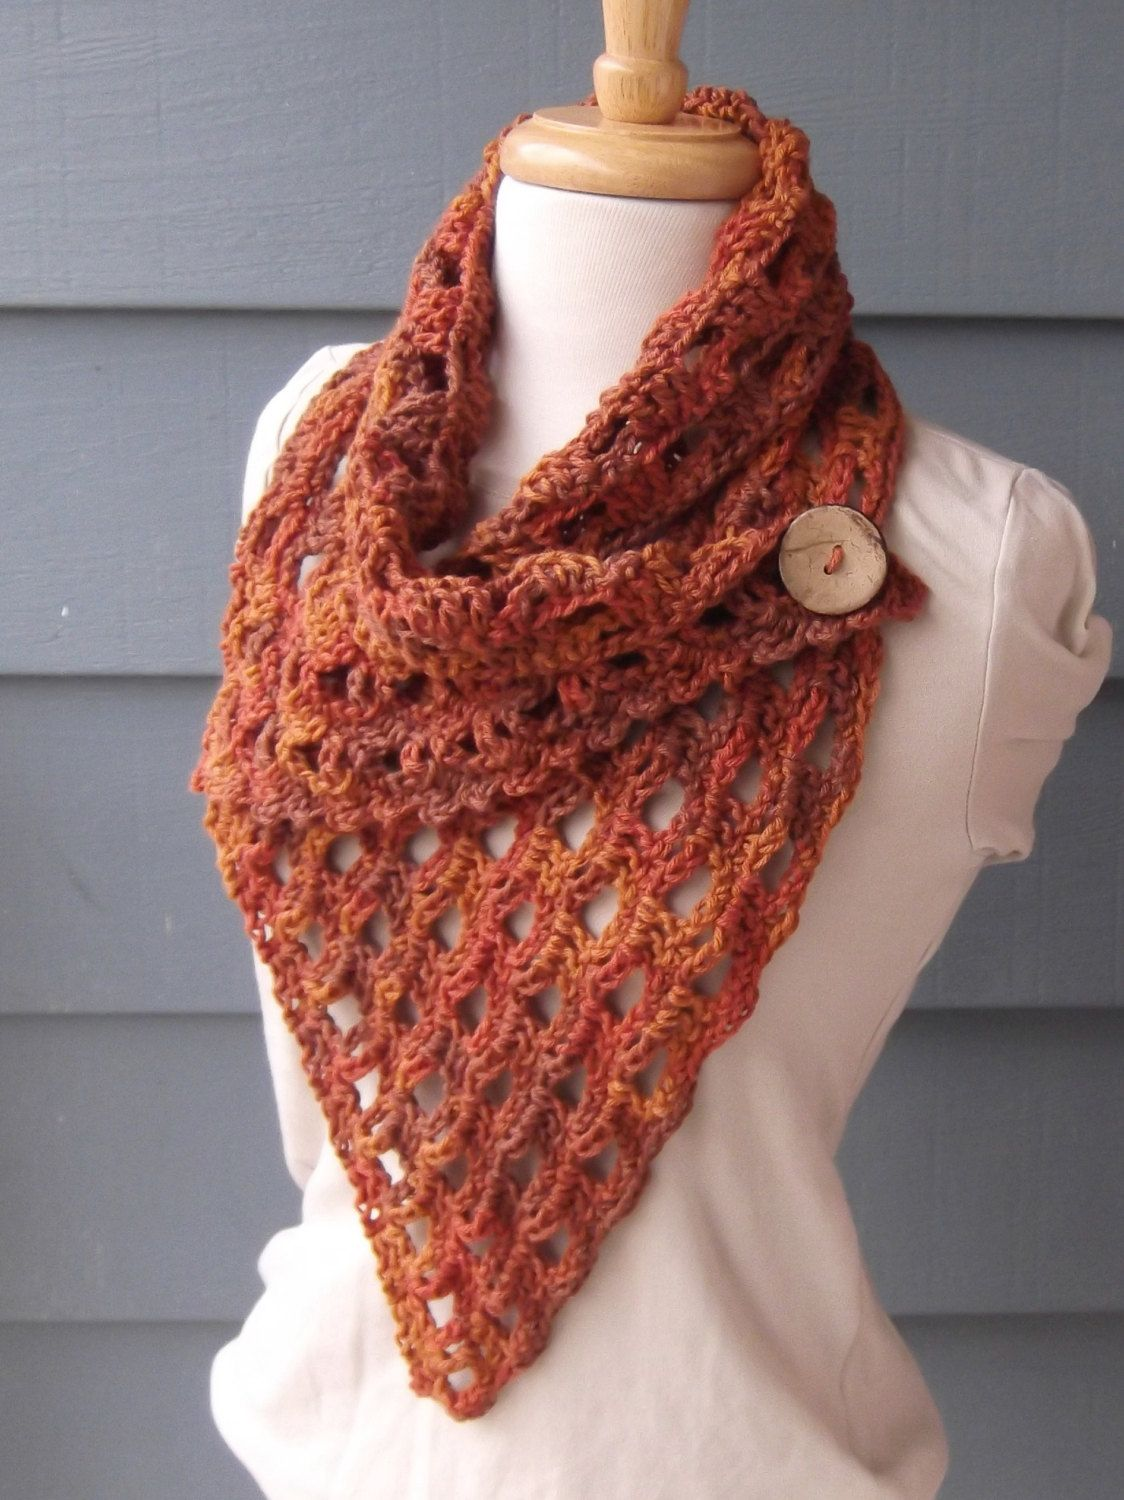 PATTERN 003 - Izzy Cowl - Crochet Tutorial / Digital File PurpleStarDust 5.00 USD October 16 2015 at 01:31PM